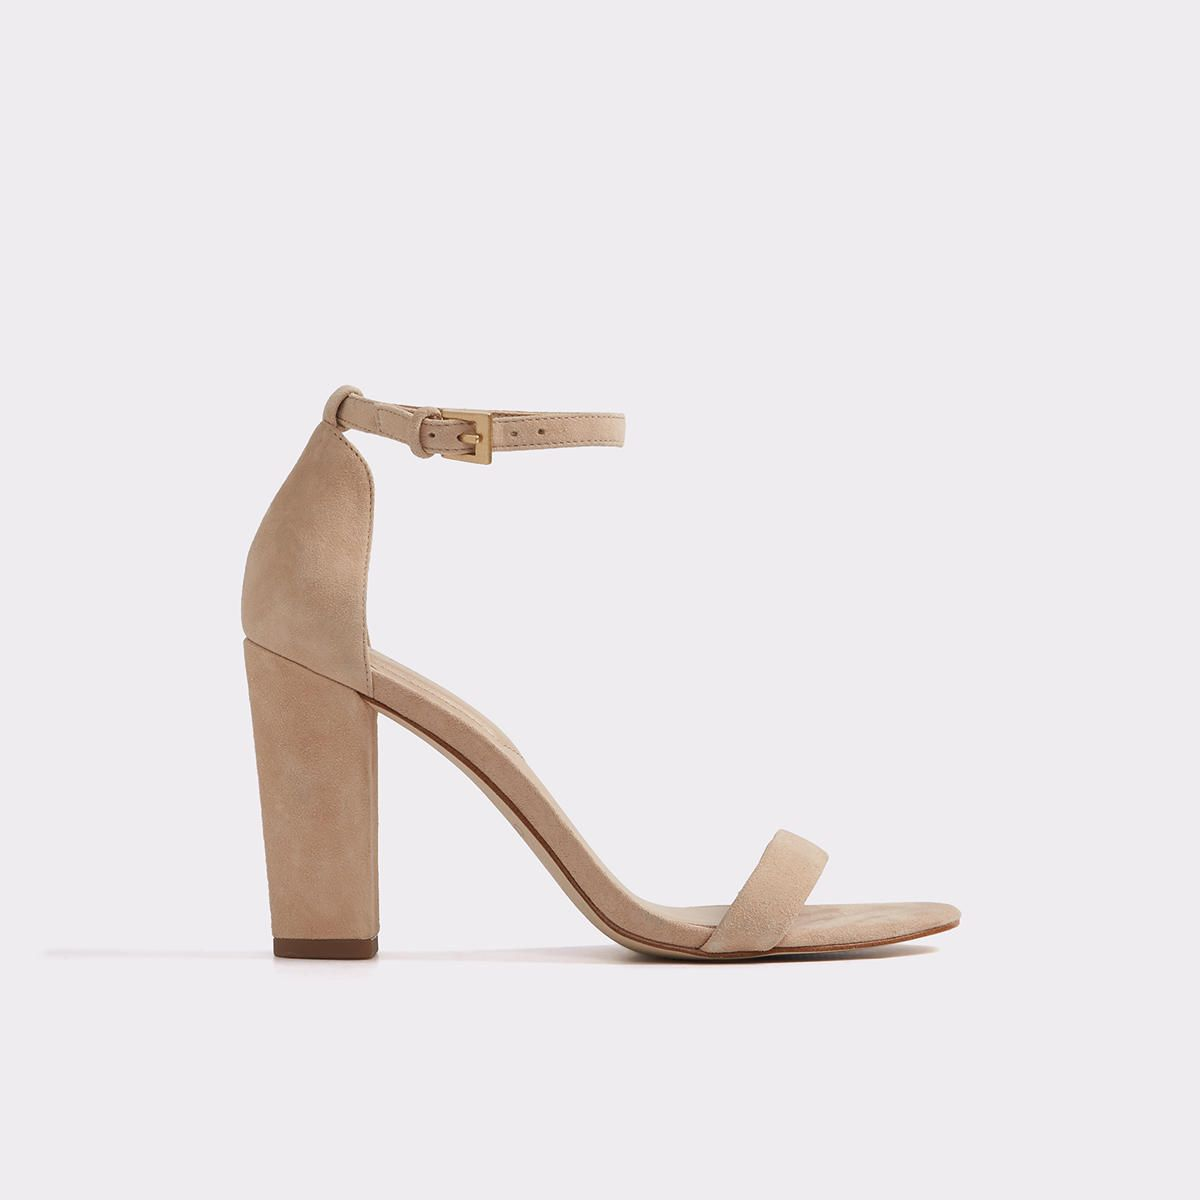 Aldo Women's Myly Ankle Strap Sandals Supply For Sale Cheap Price Pre Order Quality Designer Free Shipping Cheapest Iy1ZlQS1a